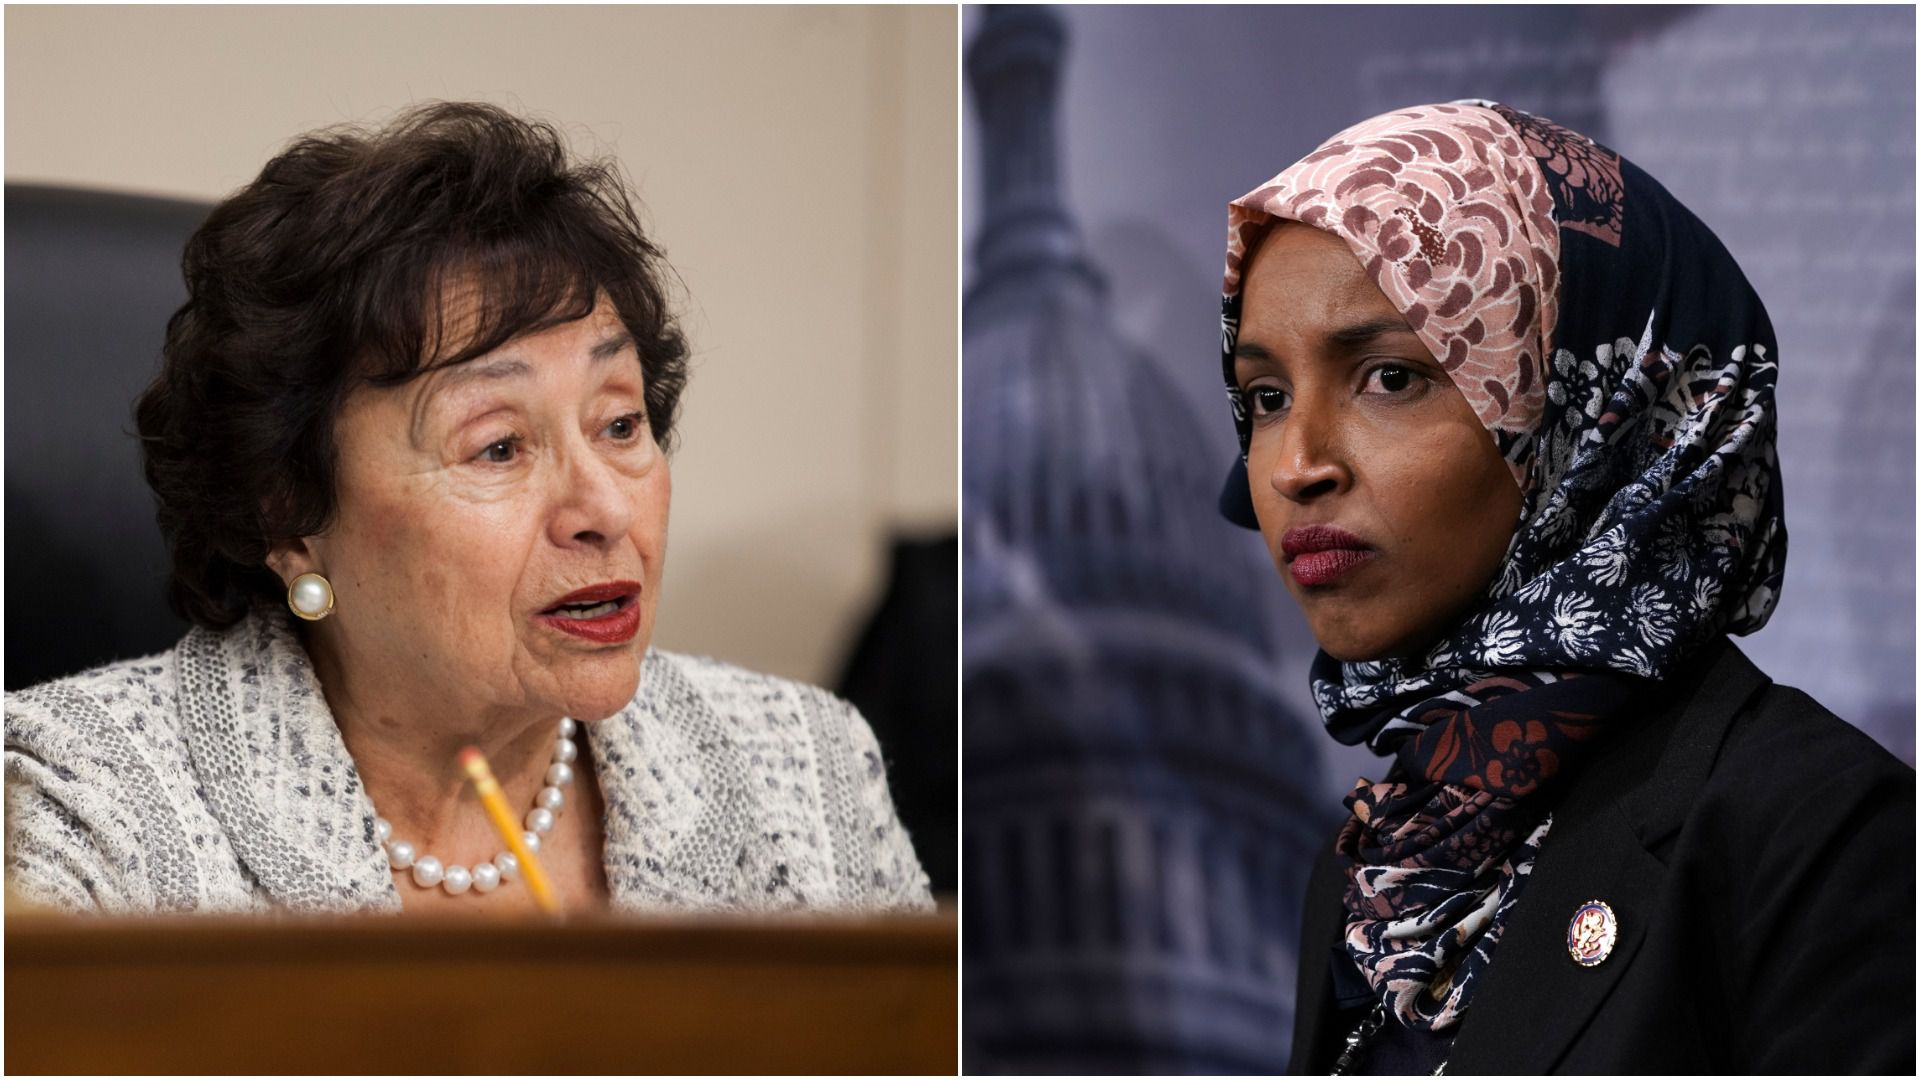 Democratic Reps. Nita Lowey (D-N.Y.) and Ilhan Omar (D-Minn.)